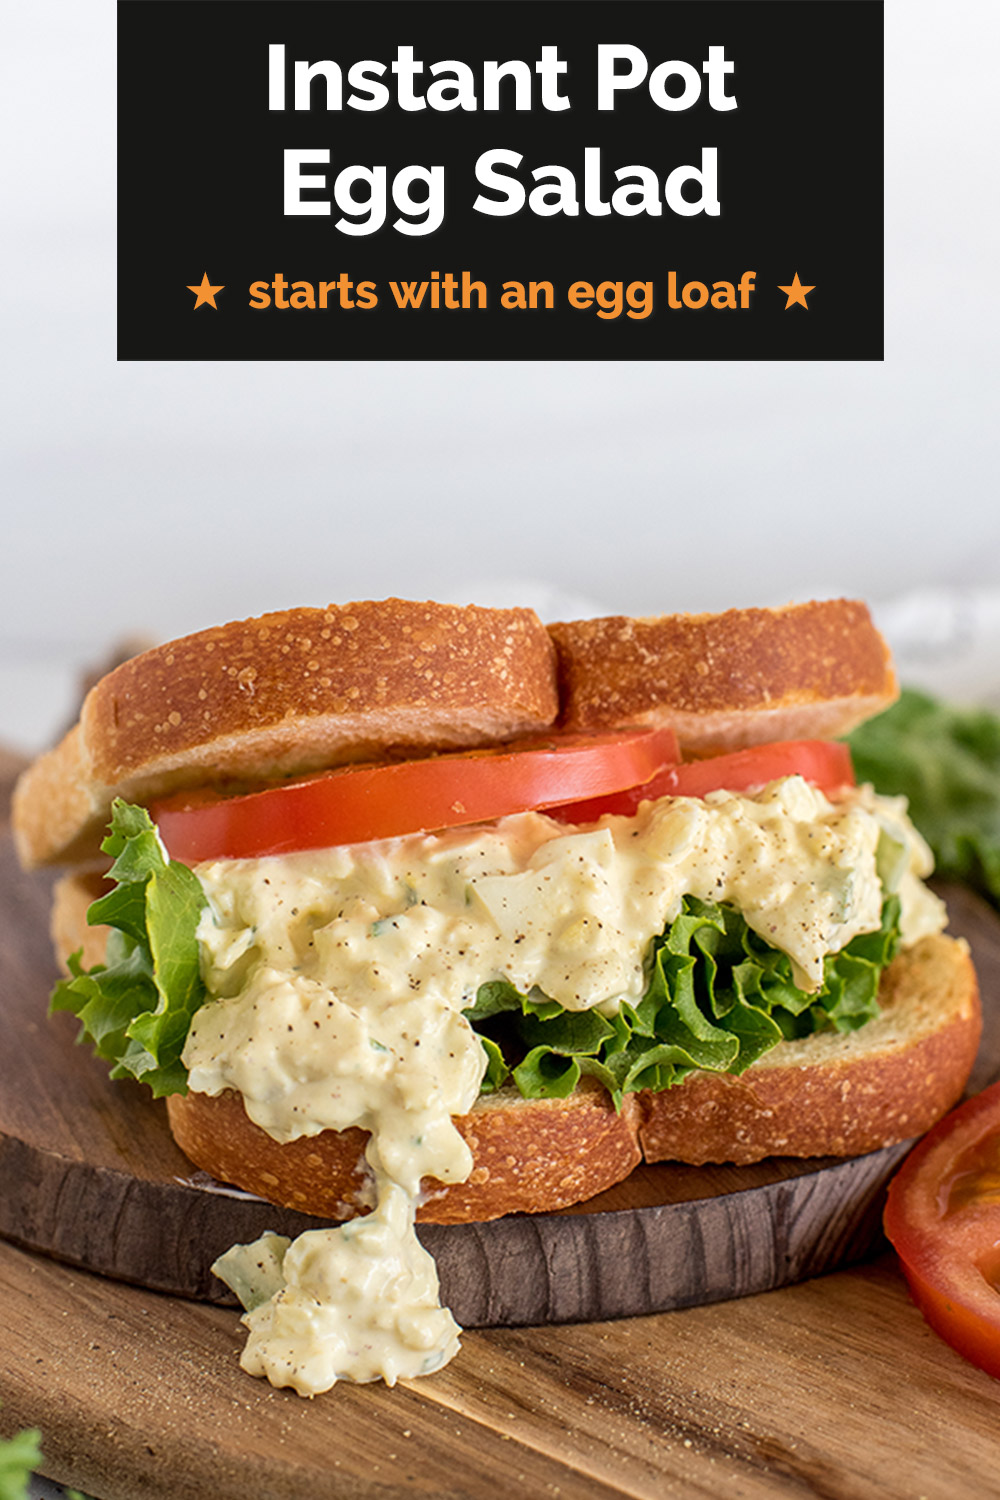 NO-PEEL EGG SALAD SANDWICHES! | Use the egg loaf trick in your pressure cooker to make delicious, traditional Egg Salad Sandwiches. via @PressureCook2da